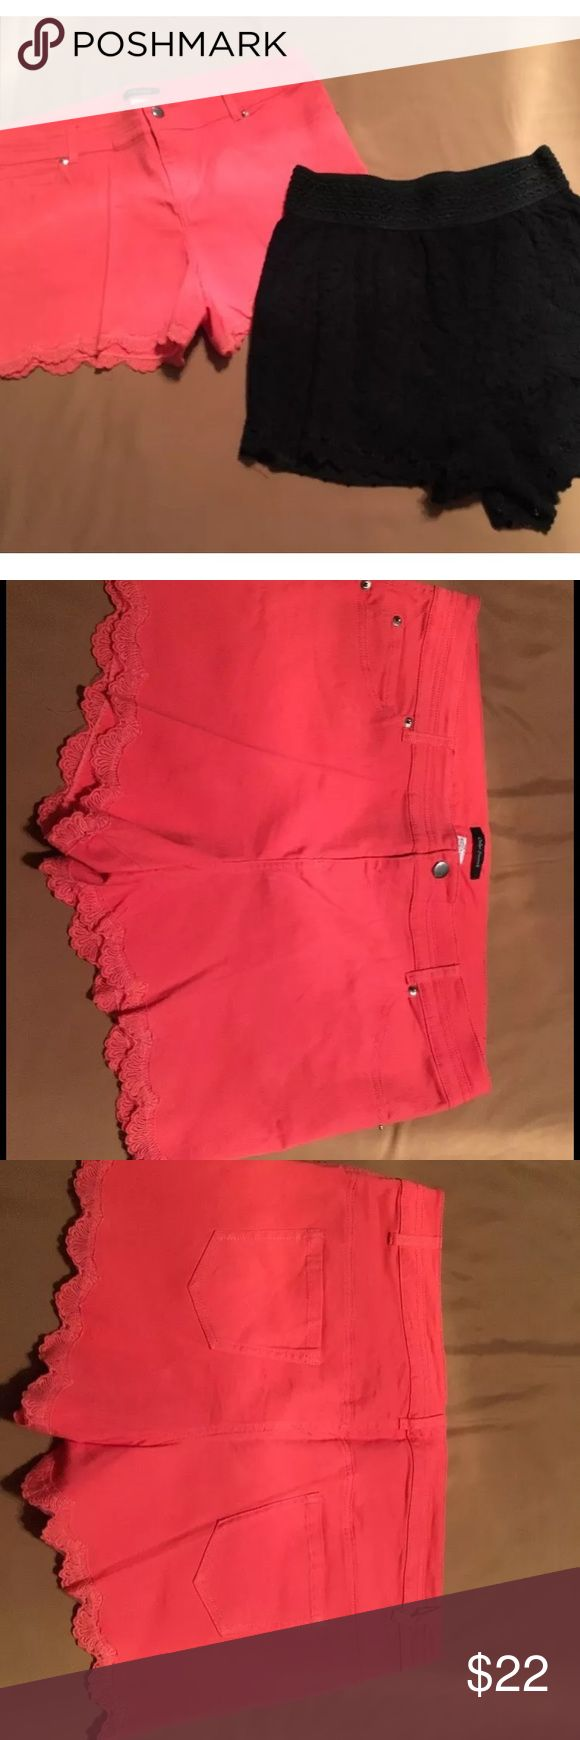 💕Bundle of Shorts. 1XL. Barely worn💕 Bundle of 2 cute & sassy shorts 1XL. Barely worn and in excellent condition. Black lace is fully lined with elastic. Coral pair has lace hem. 💕 Shorts